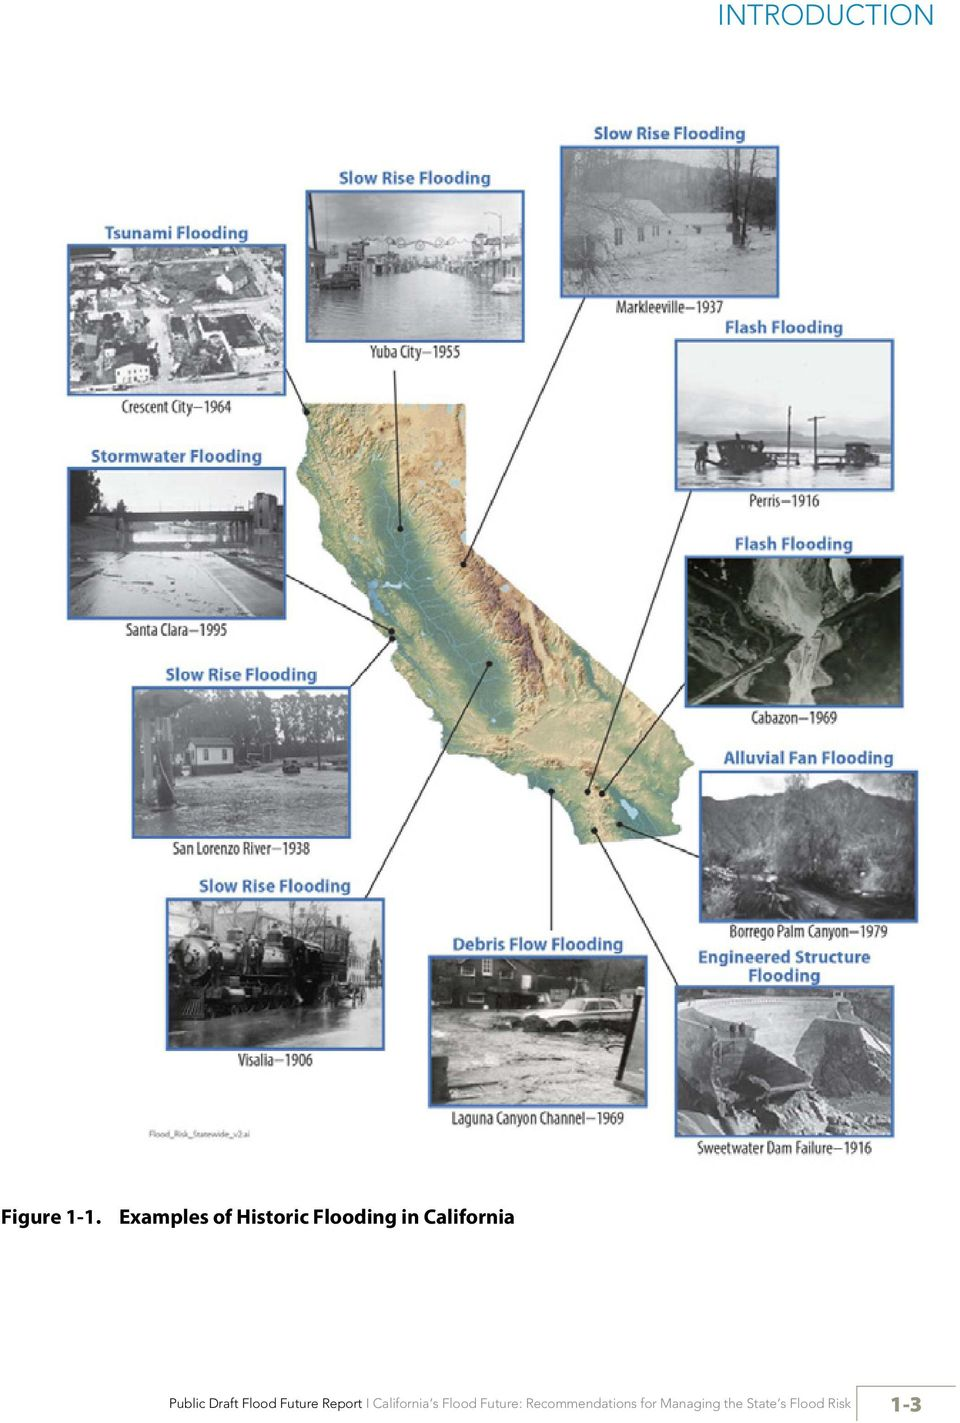 Public Draft Flood Future Report I California